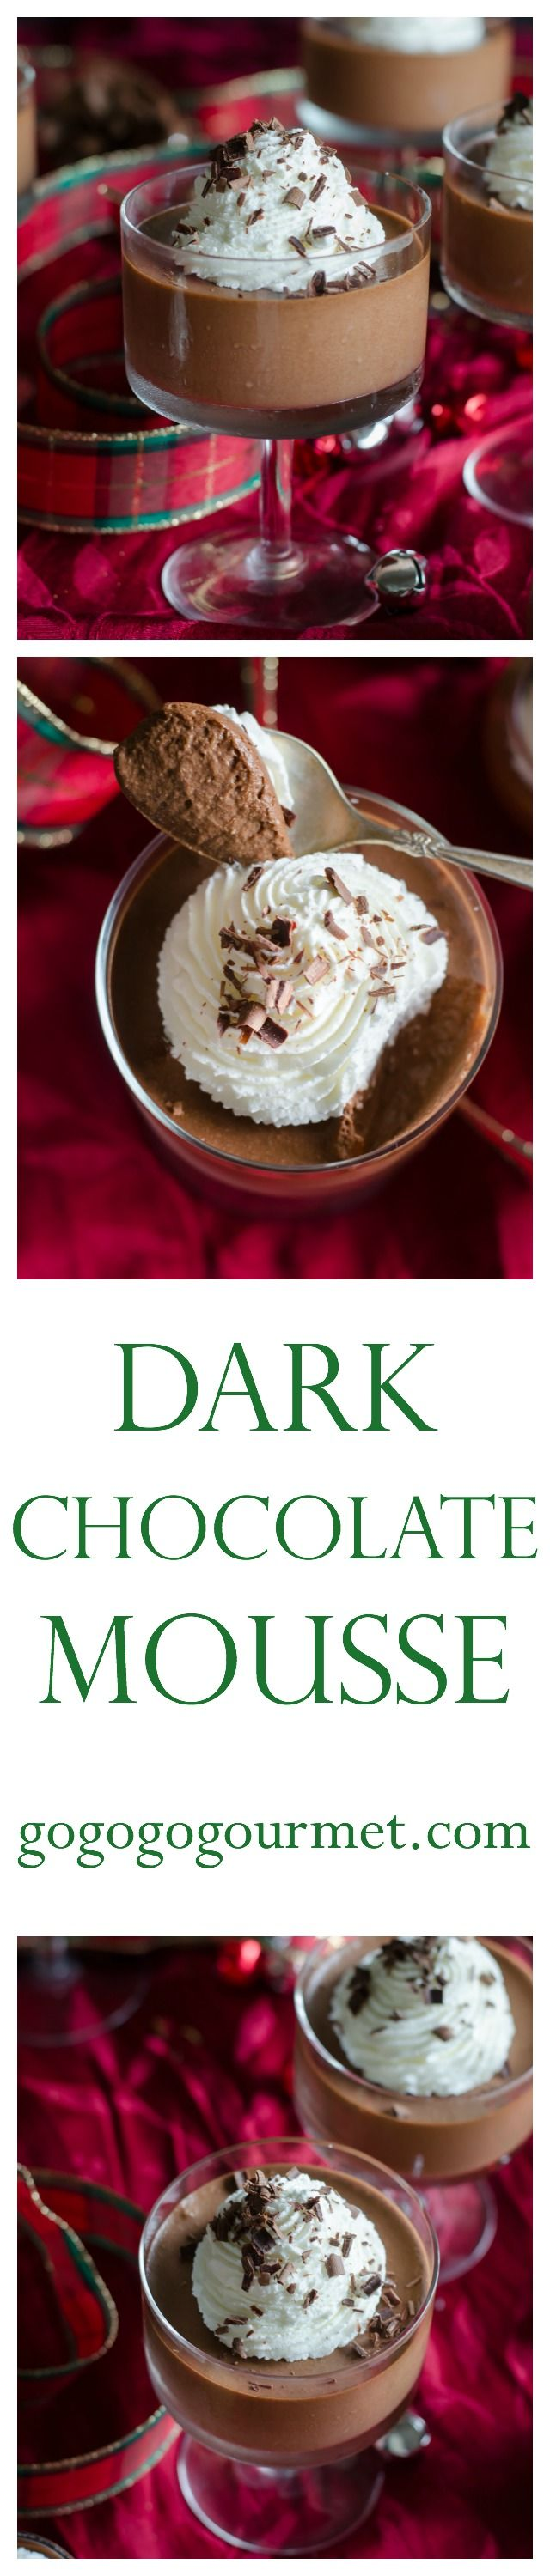 Smooth, velvety and easier than you'd expect, this dark chocolate mousse is a sure showstopper at your holiday parties. Dark Chocolate Mousse   Go Go Go Gourmet @gogogogourmet